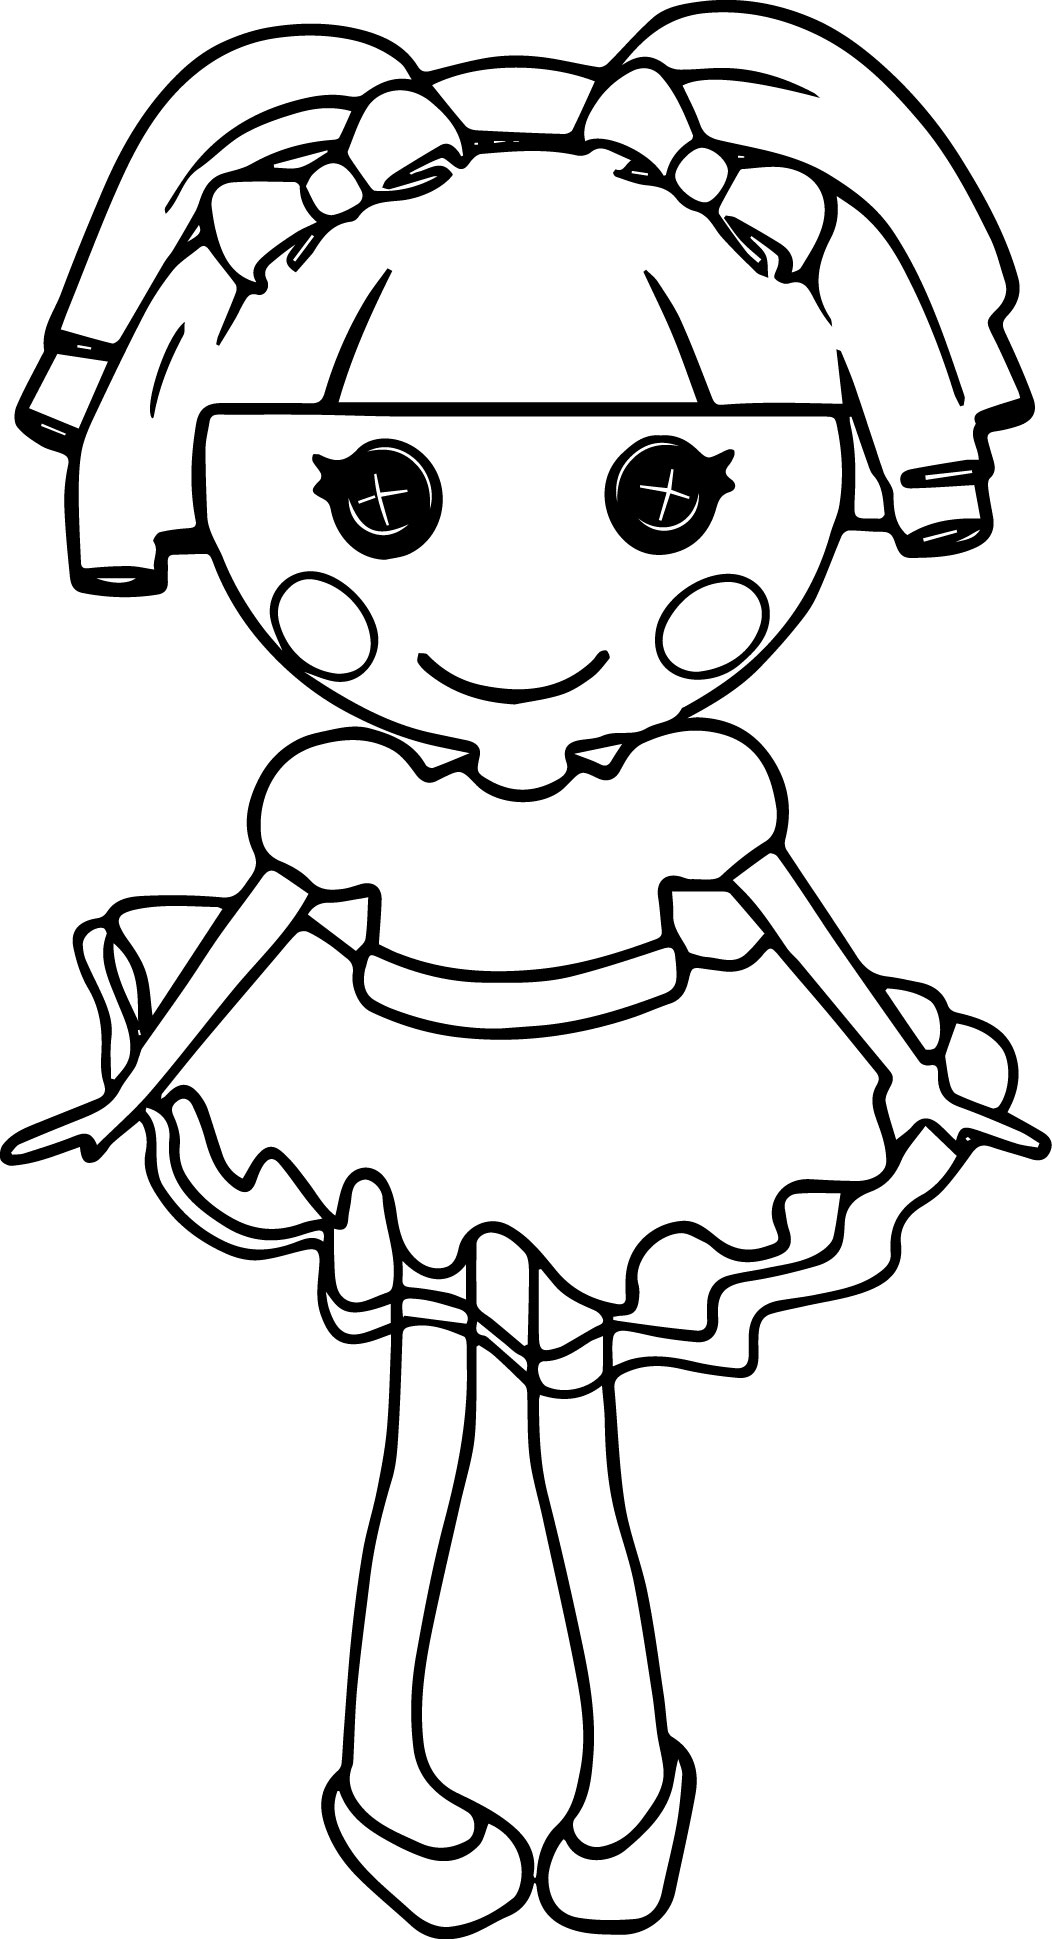 lalaloopsy cartoon coloring pages wecoloringpage